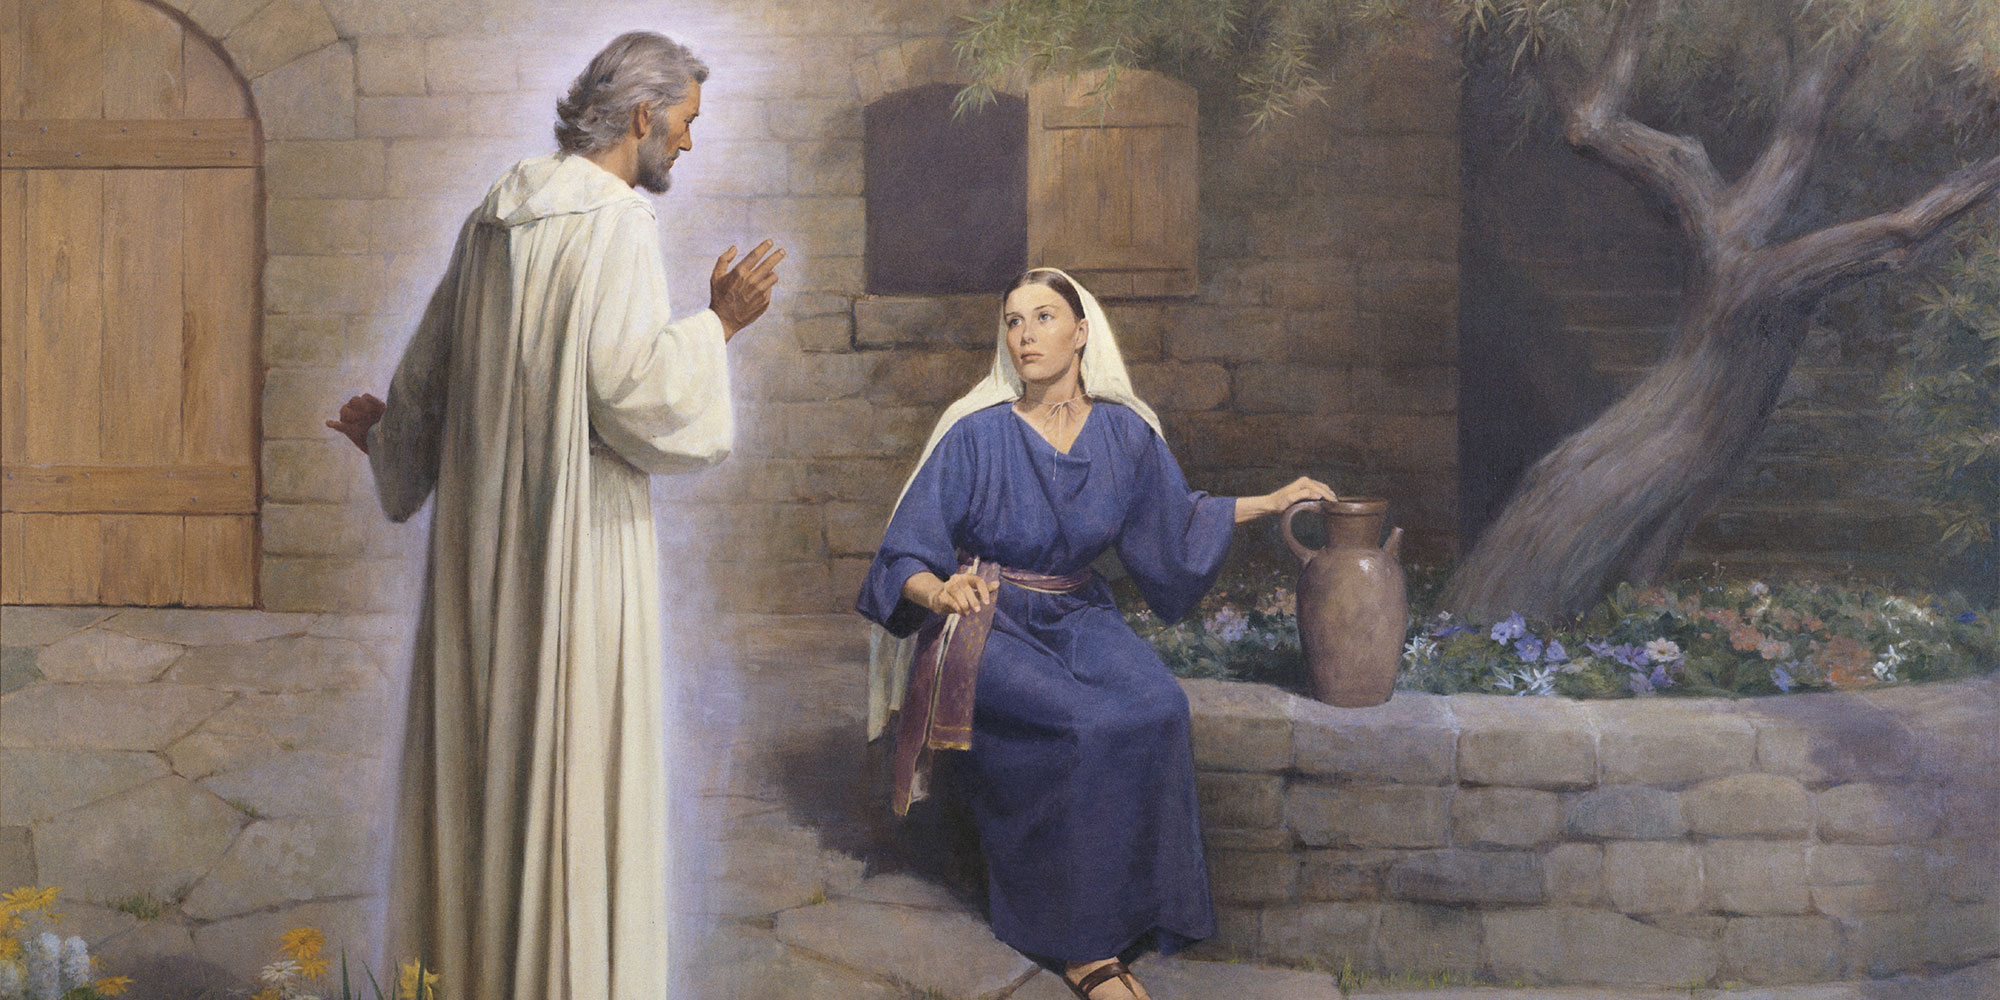 The Annunciation by John Scott. Image via LDS Media Library